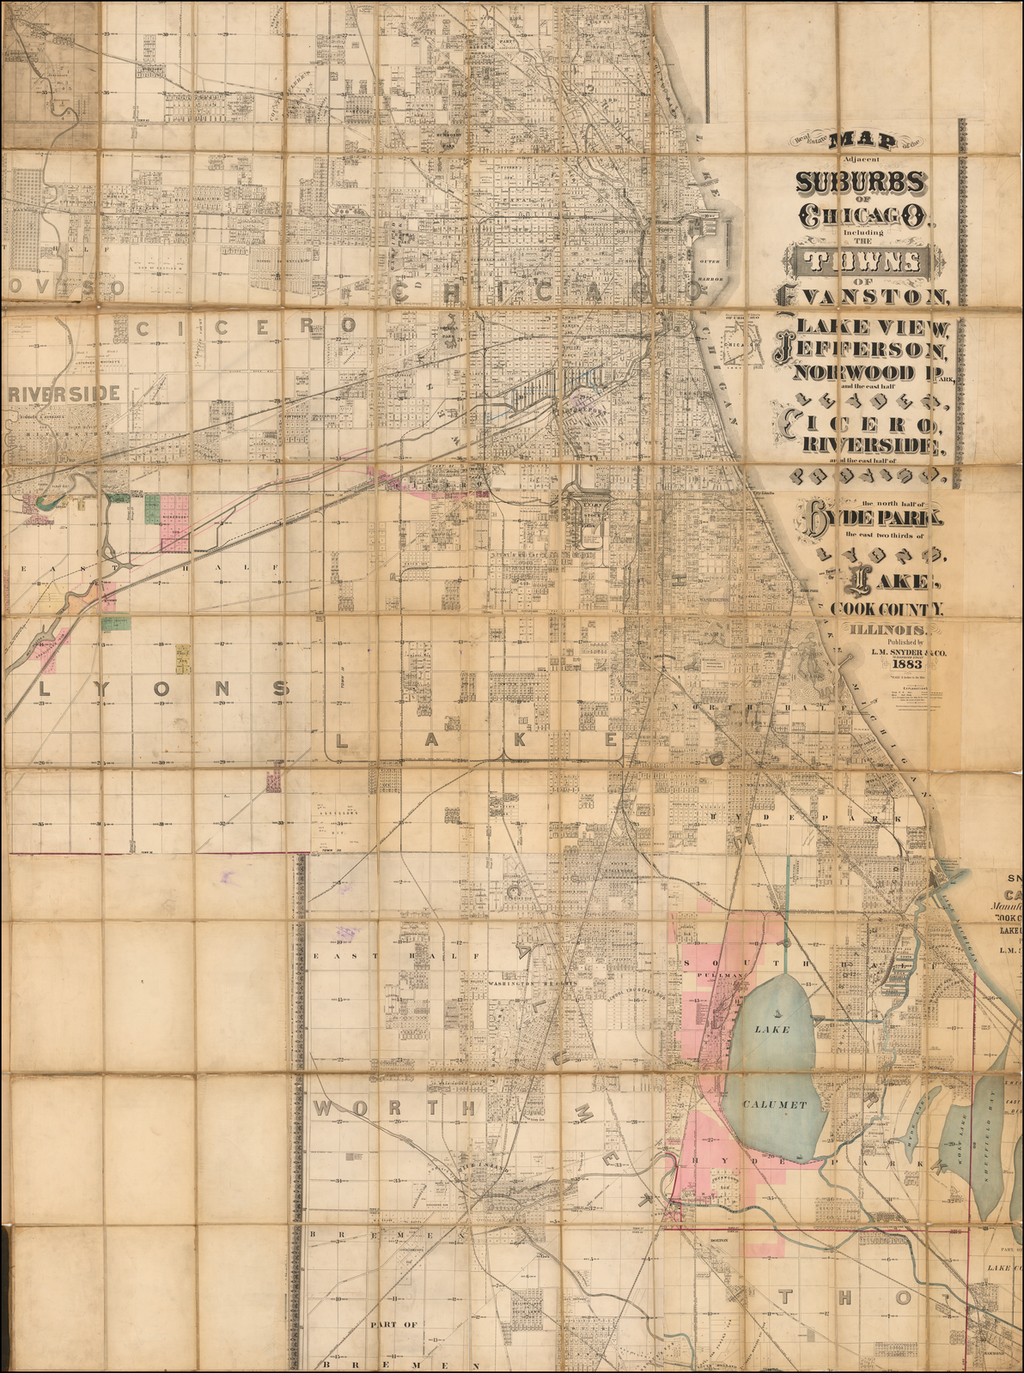 Real Estate Map of the Adjacent Suburbs of Chicago Including The Towns of Evanston, Lake View, Jefferson, Norwood Park, and the east half of Leyden, Cicero, Riverside, and the east half of Proviso, the north half of Hyde Park, the east two thirds of Lyons, and Town of Lake, Cook County, Illinois. By L.M. Snyder & Co.